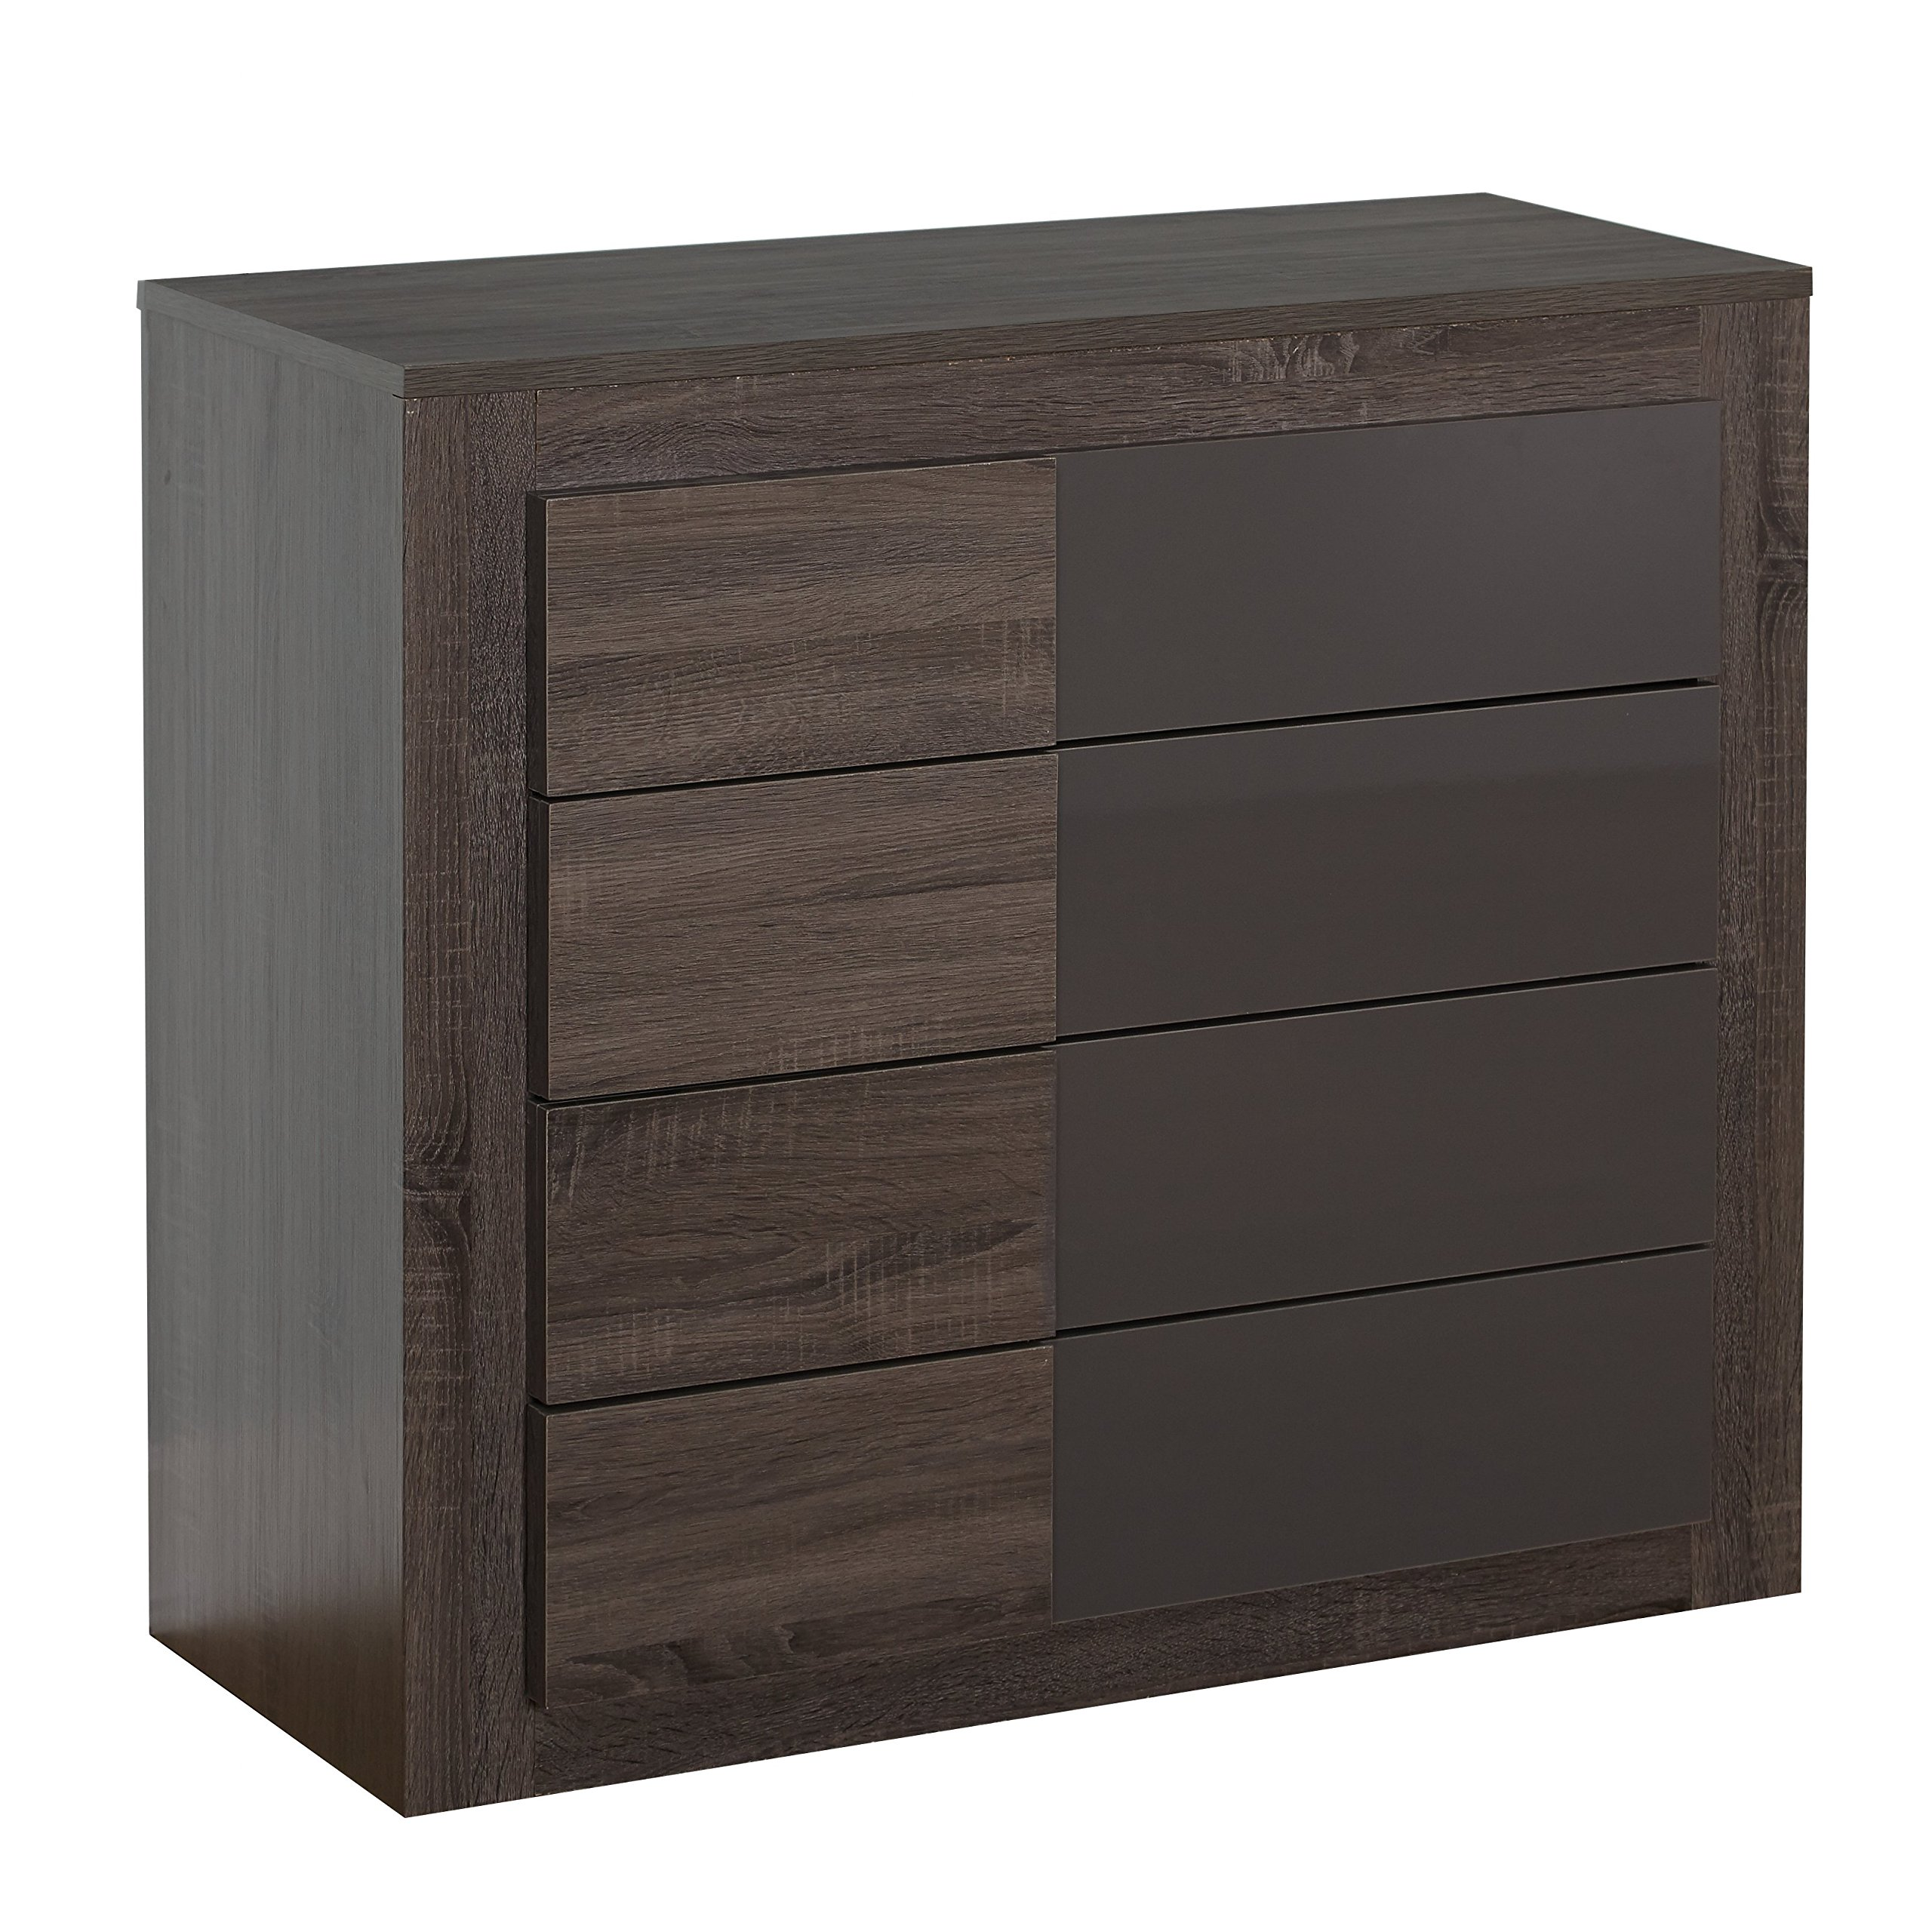 Target Marketing Systems Two-Toned Eden Drawer Chest with 4 Drawers, Dark Sonoma Oak/High Gloss Gray by Target Marketing Systems